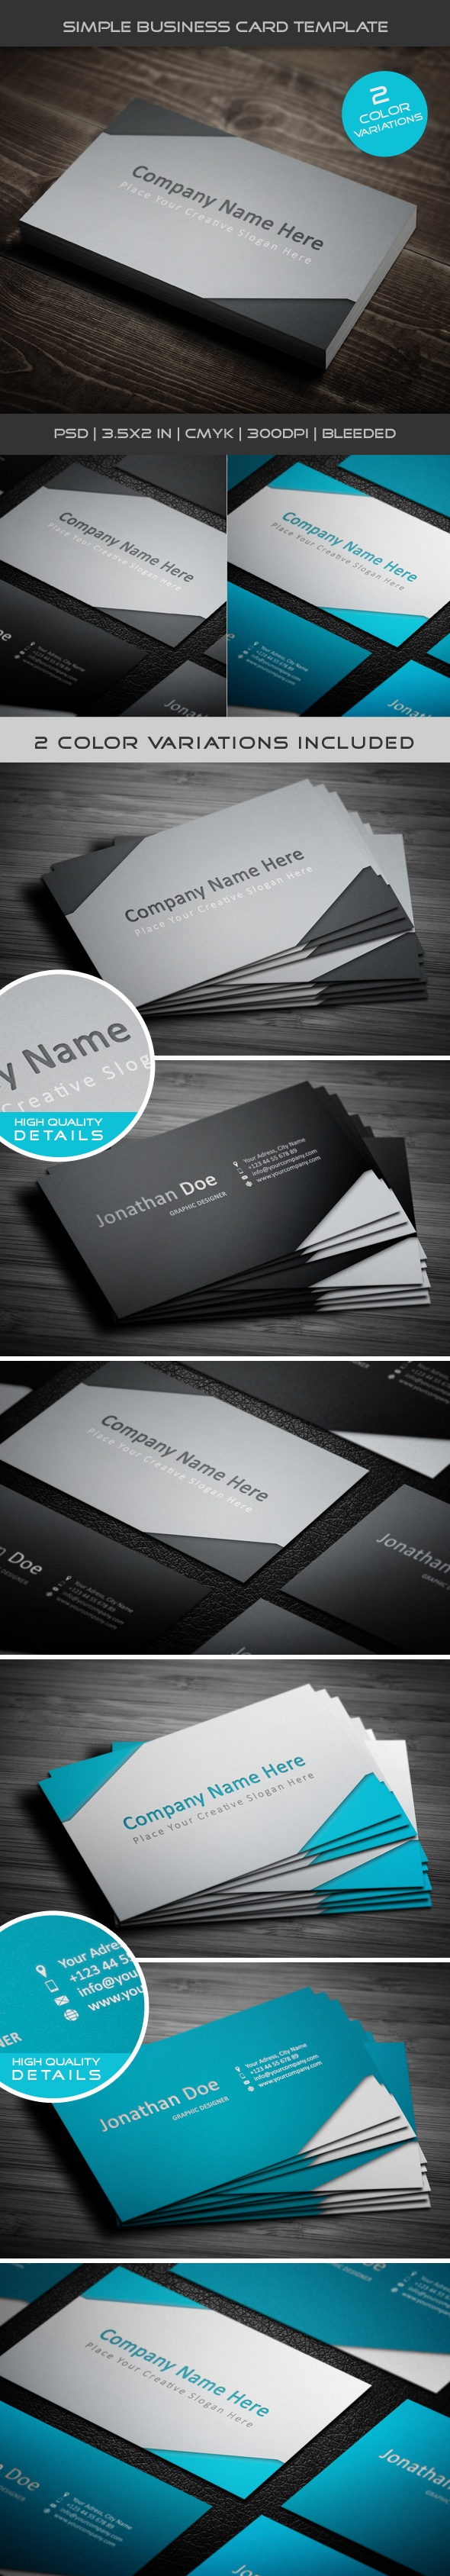 25 best business card images on pinterest